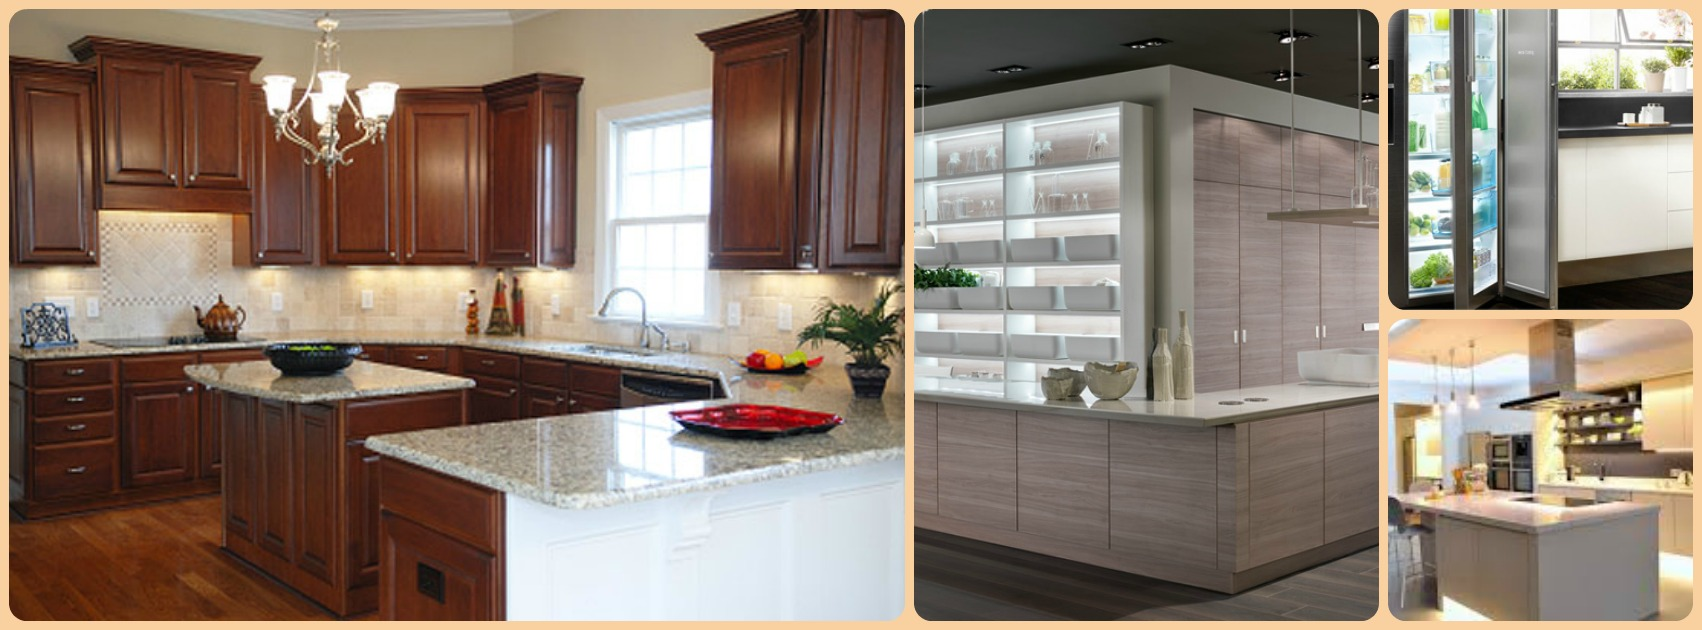 Top 10 kitchen bath contractors marin county ca golden for Kitchen remodeling companies